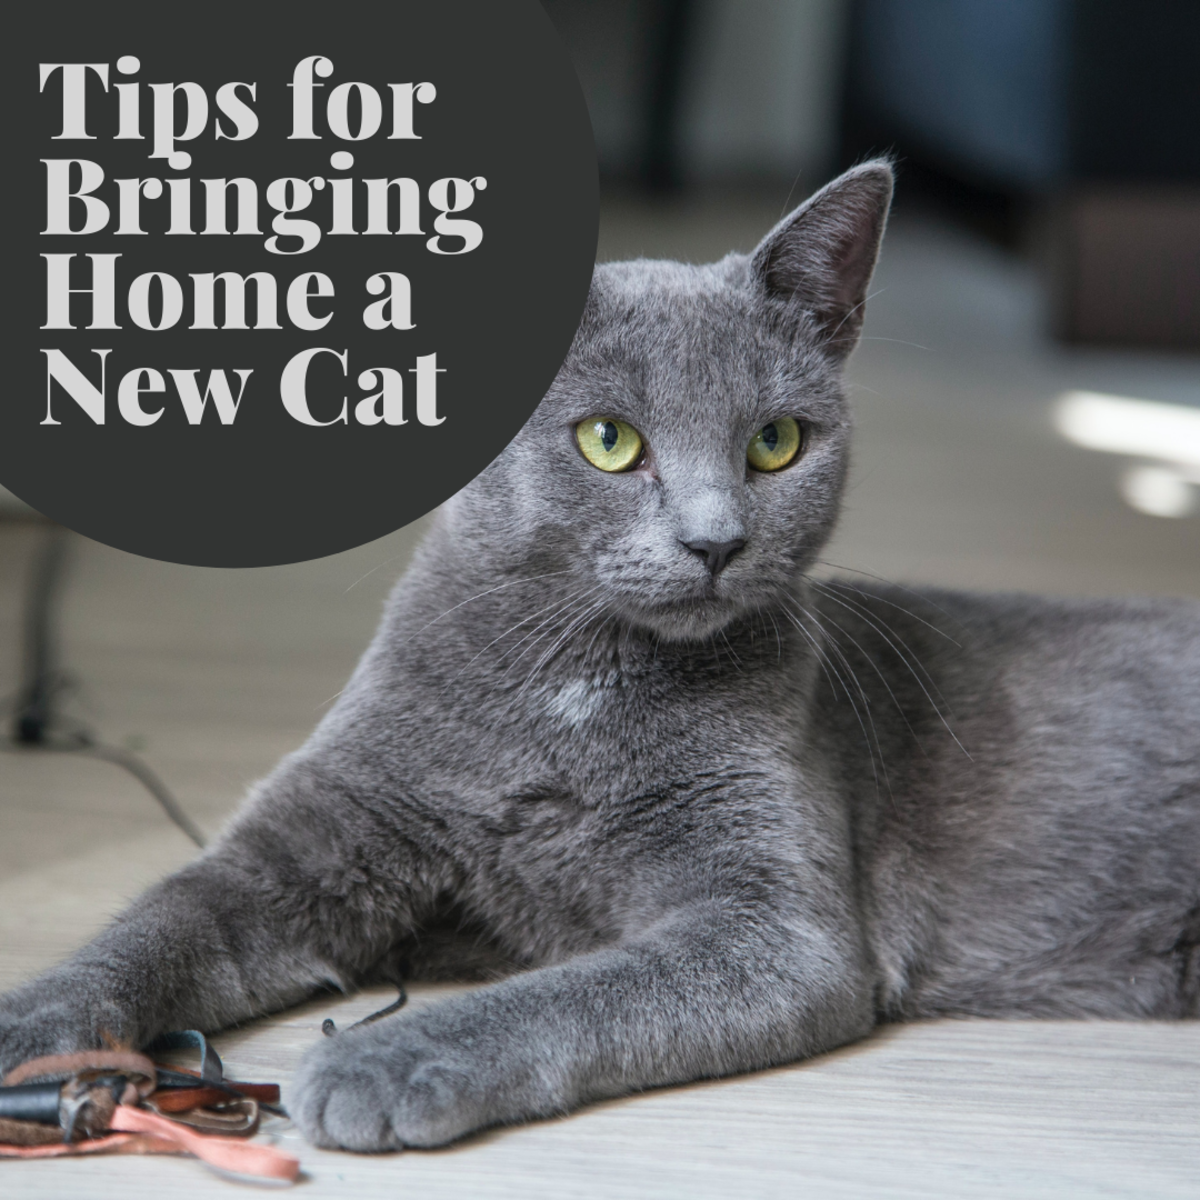 Find out some ways to make your new feline friend feel welcome in your home!